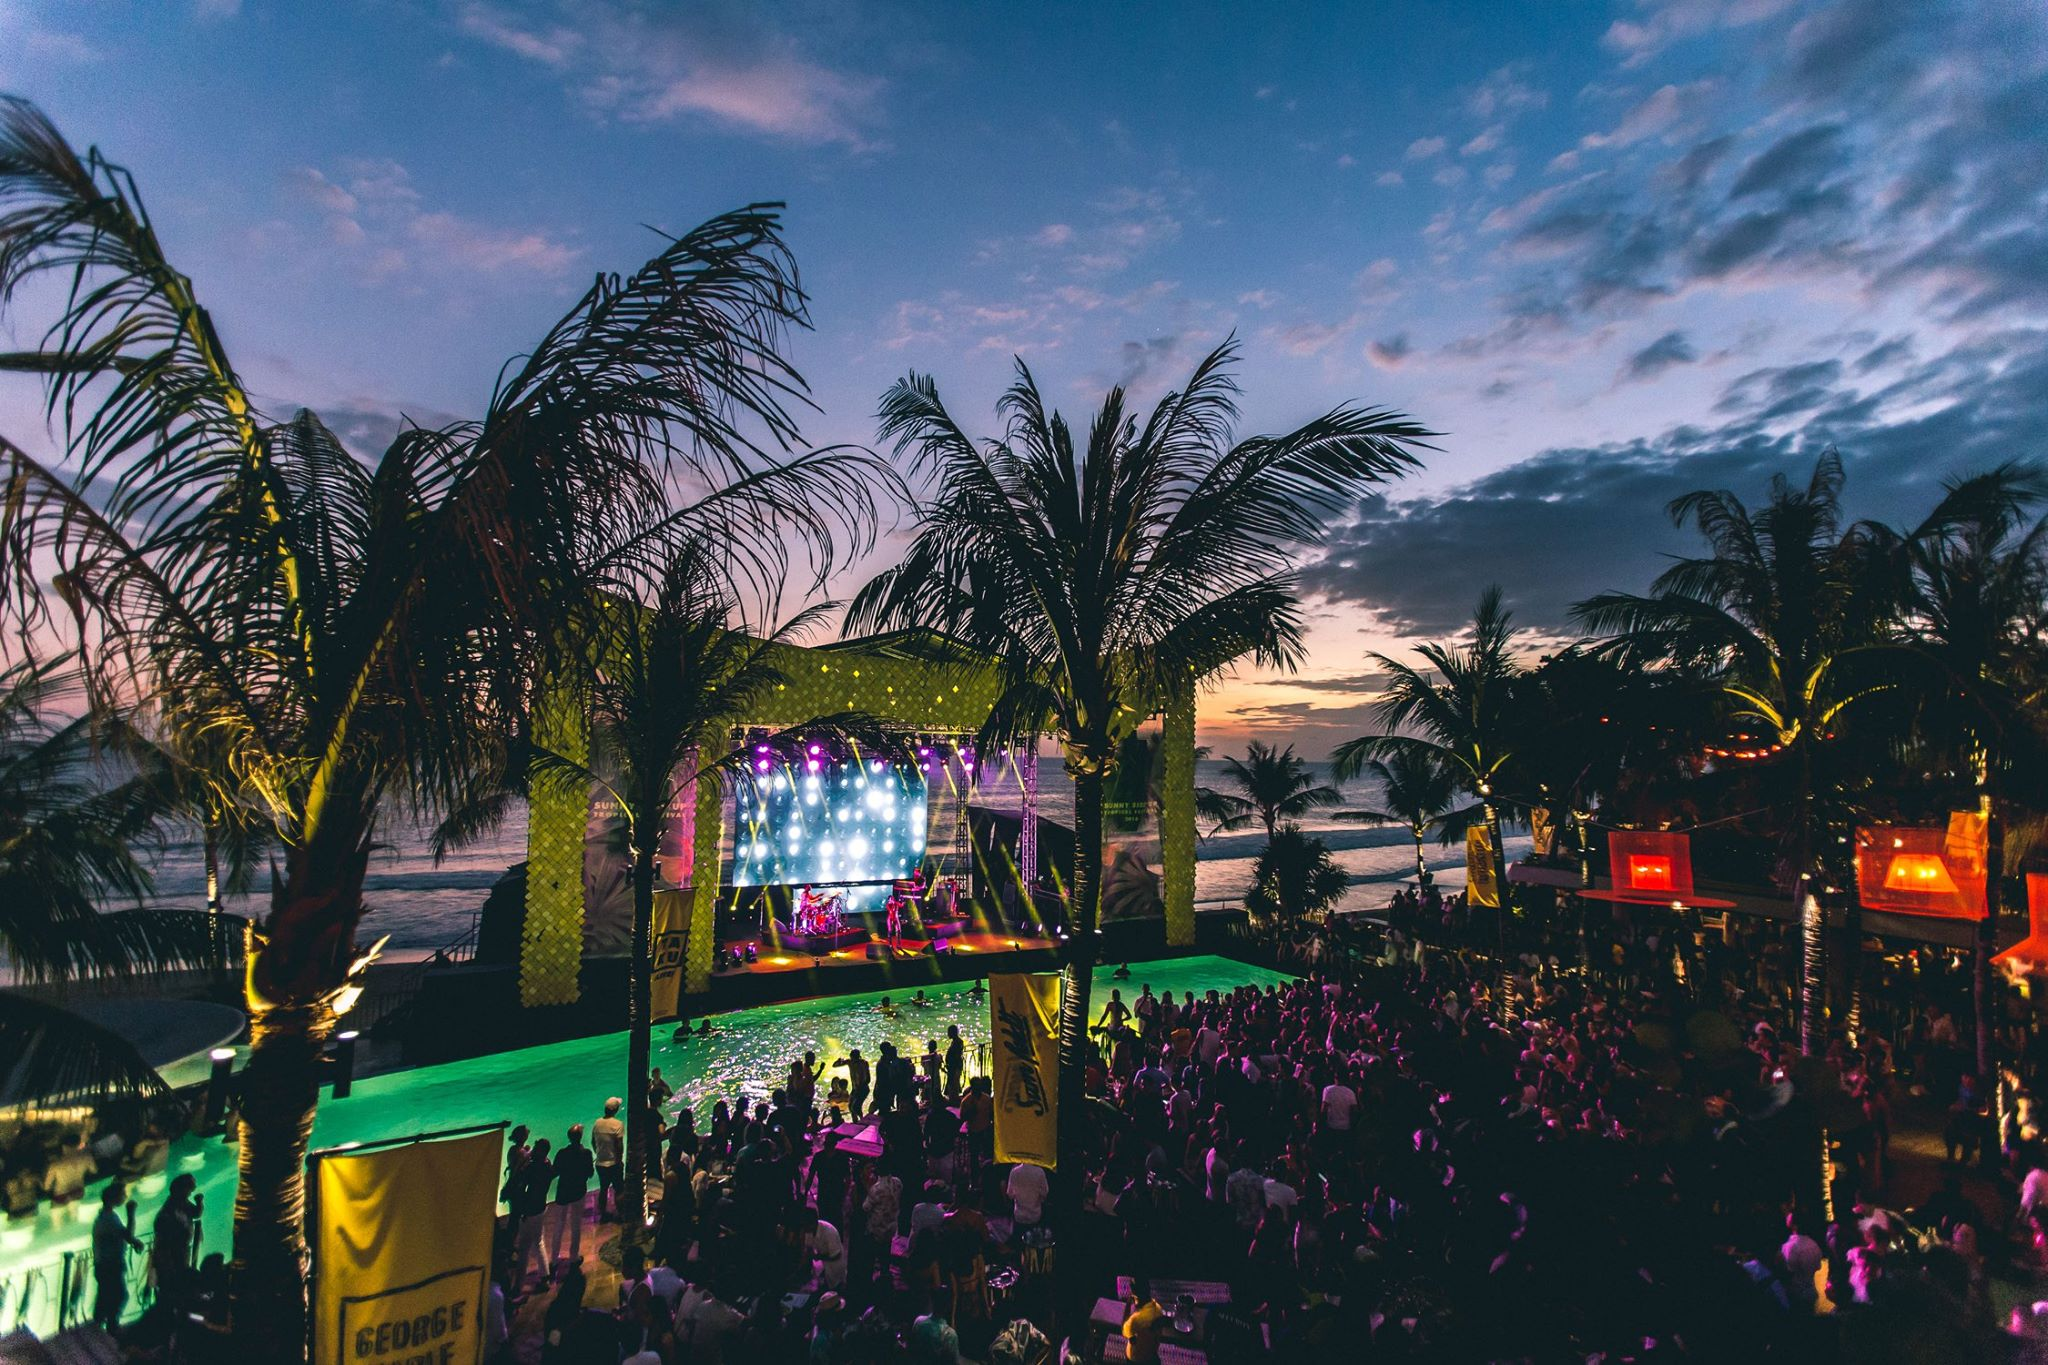 Music festival and a beach backdrop? Wonderful!